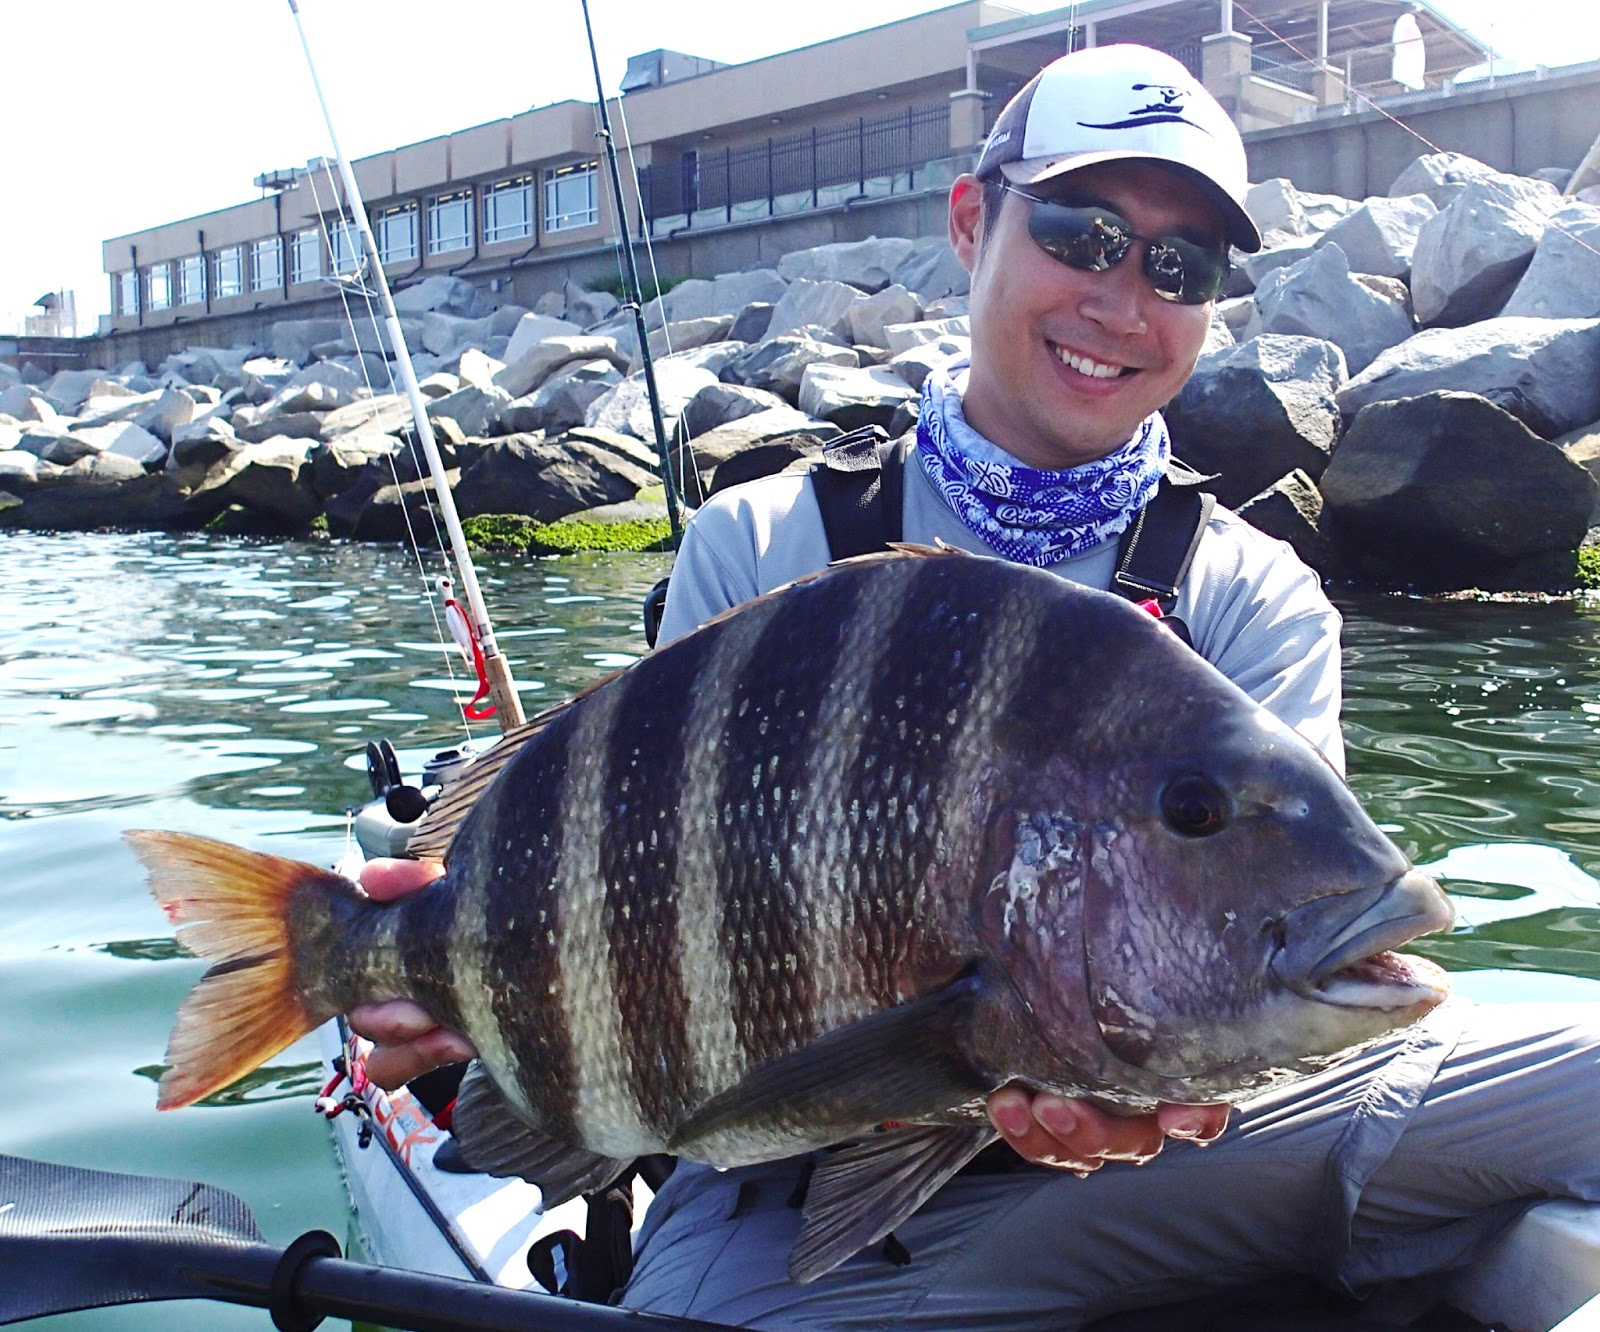 Angling addict slump busting convict for Sheepshead fishing rigs